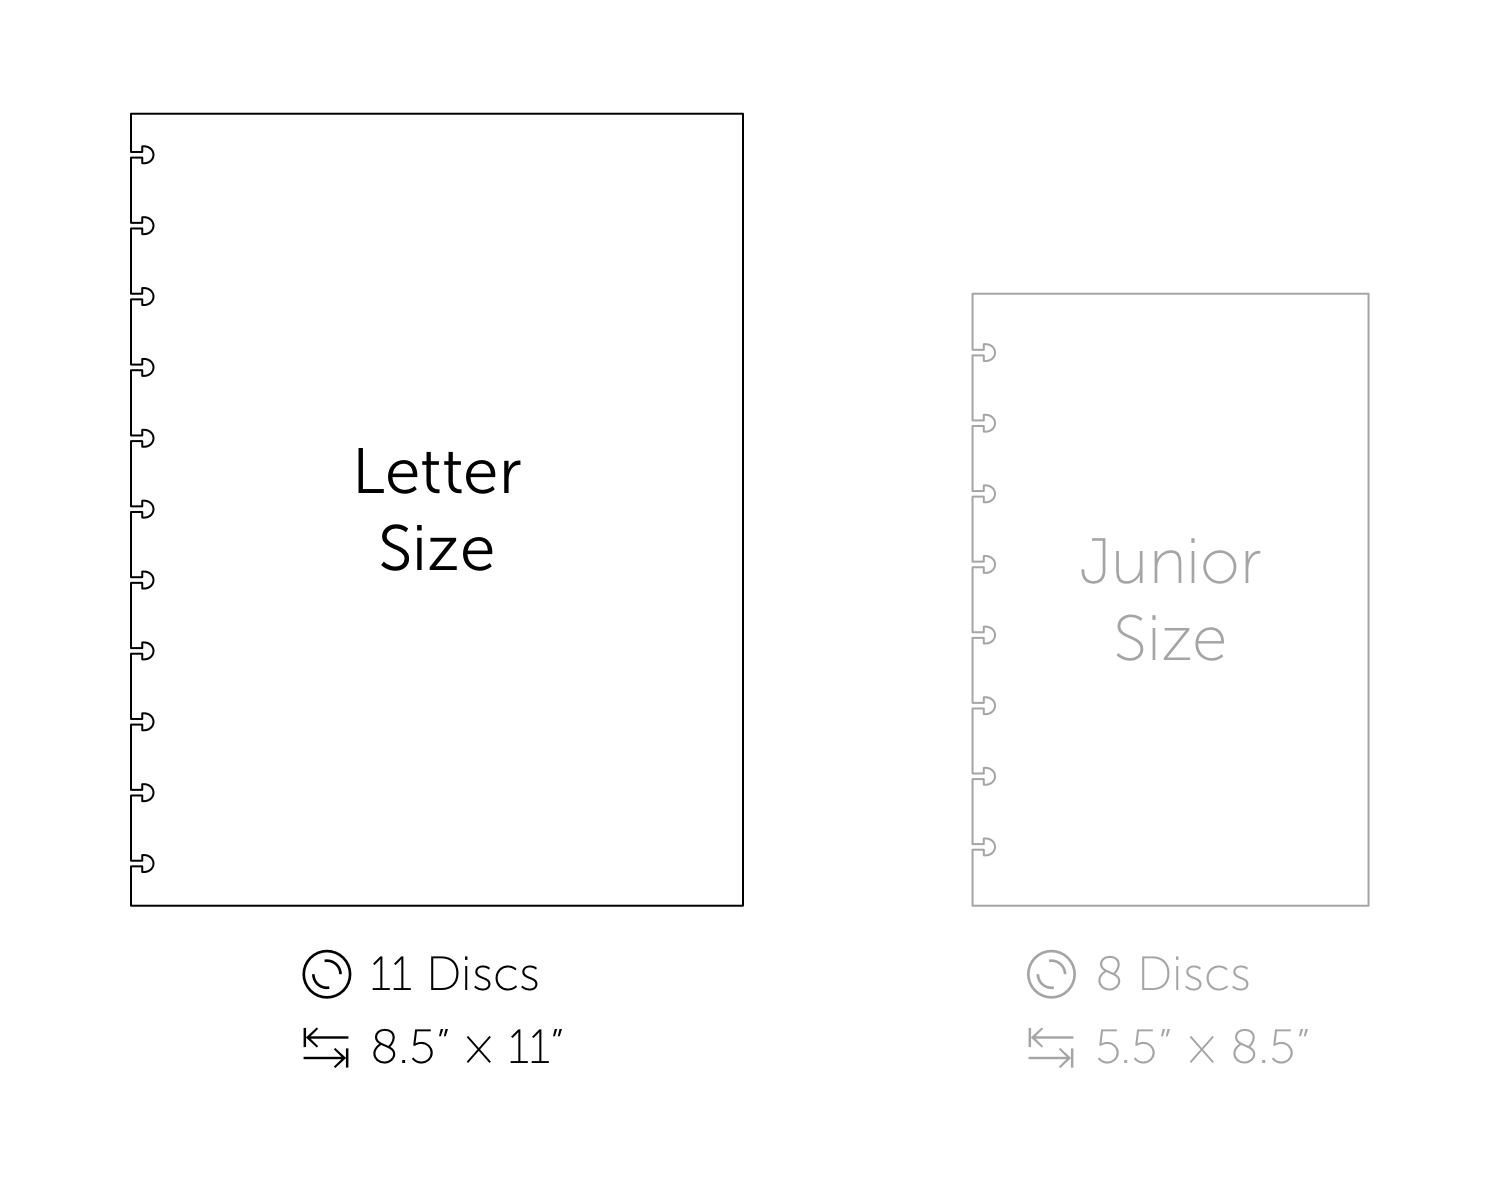 Letter Size Guide